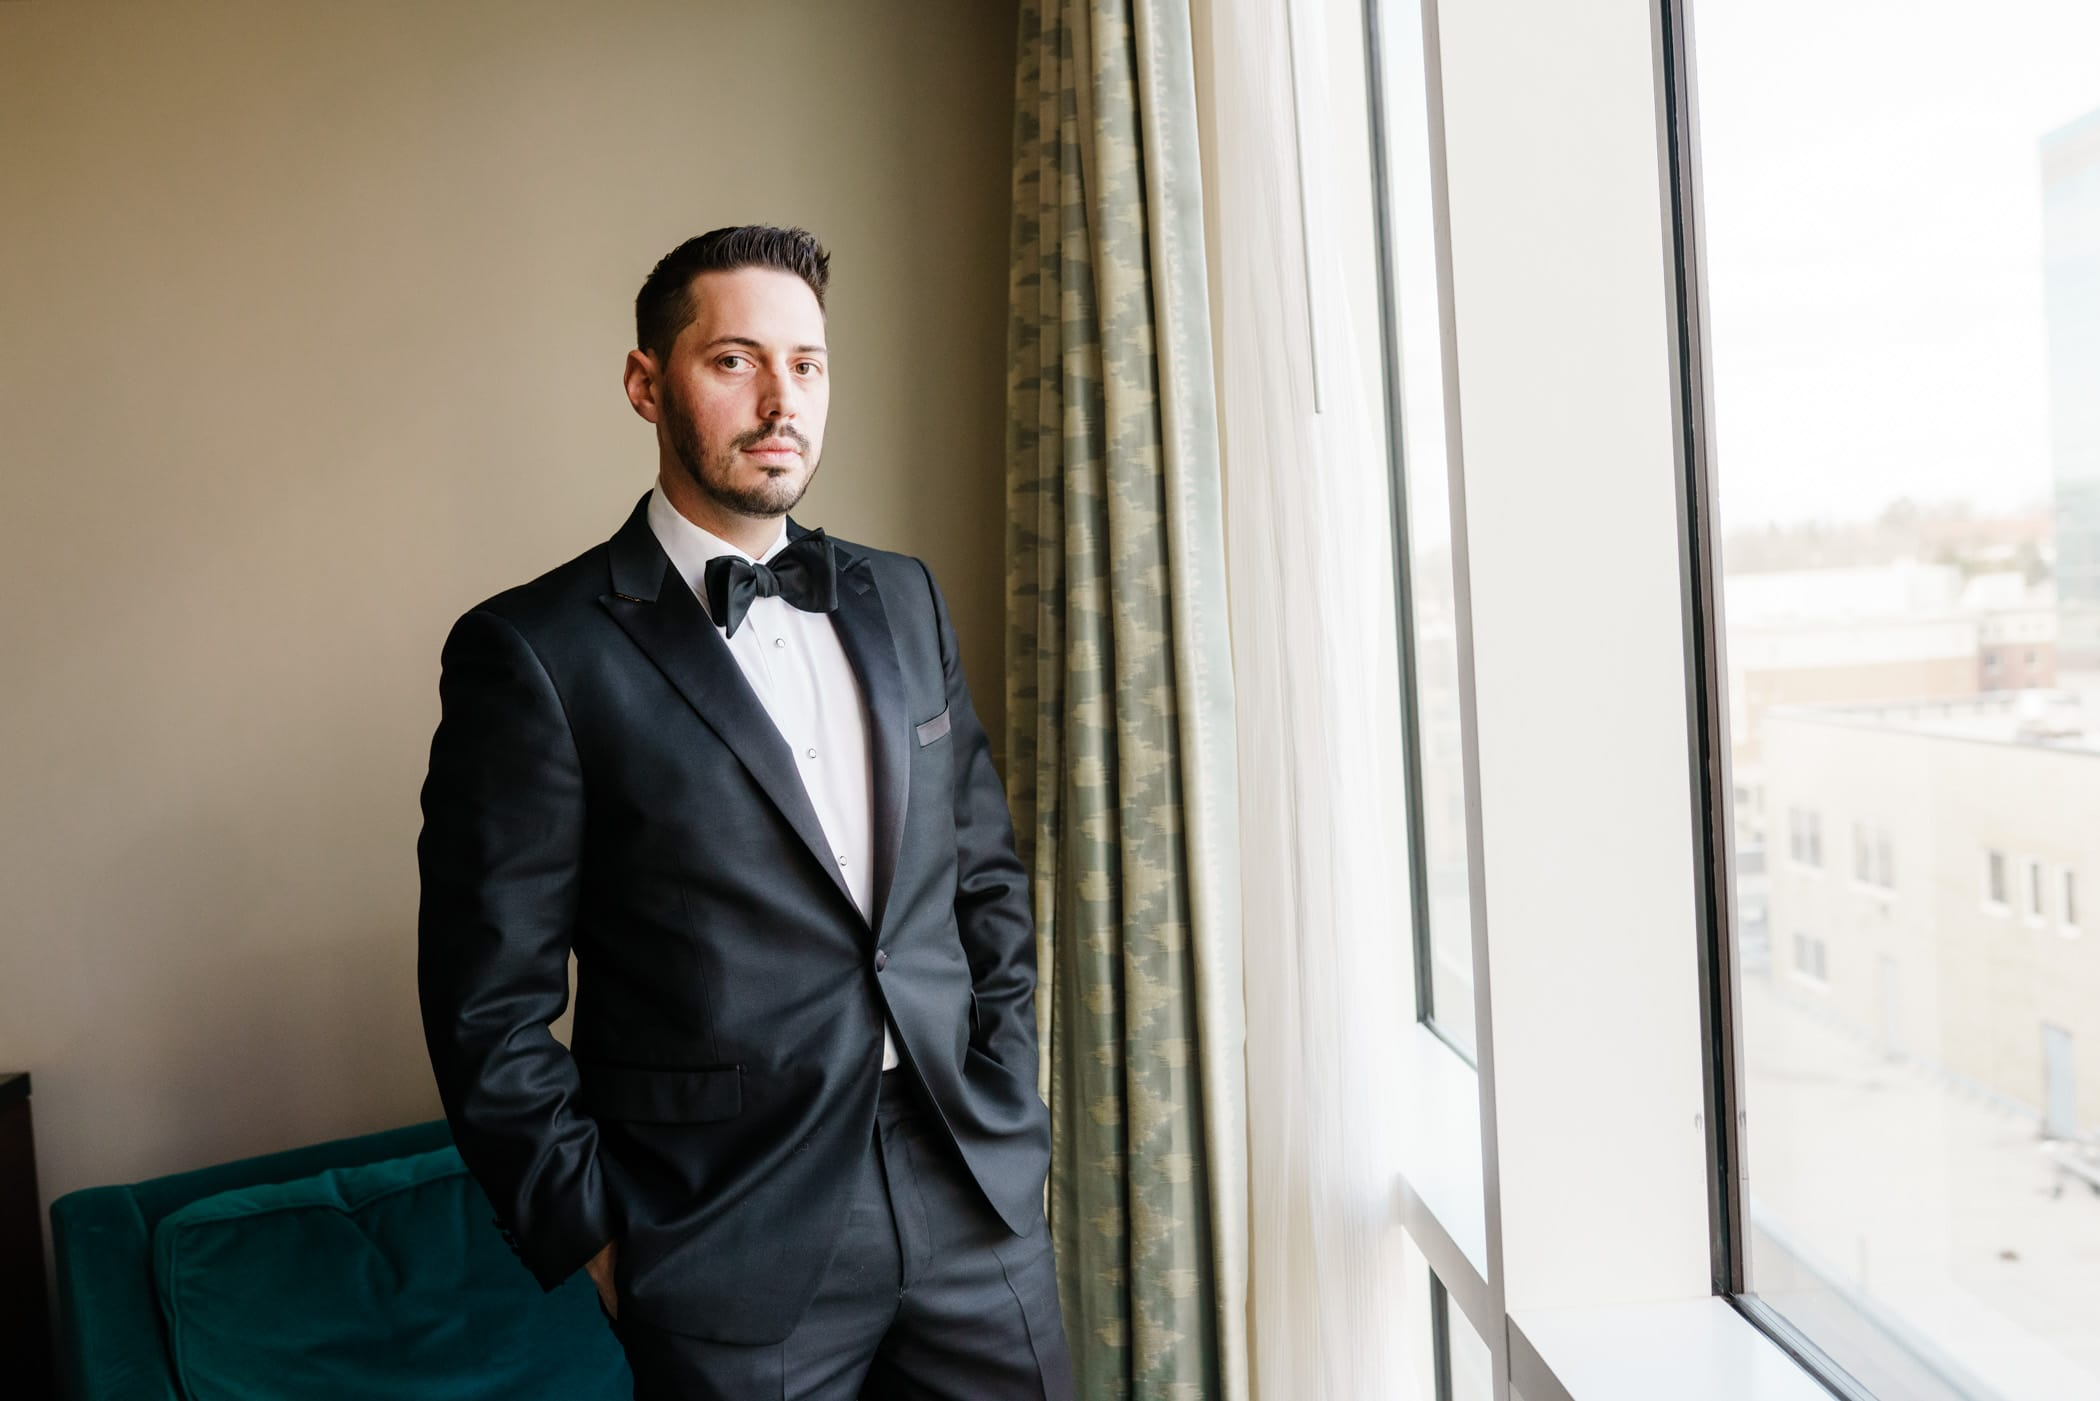 ritz-carlton-wedding-photographers-photos-macpherson-69